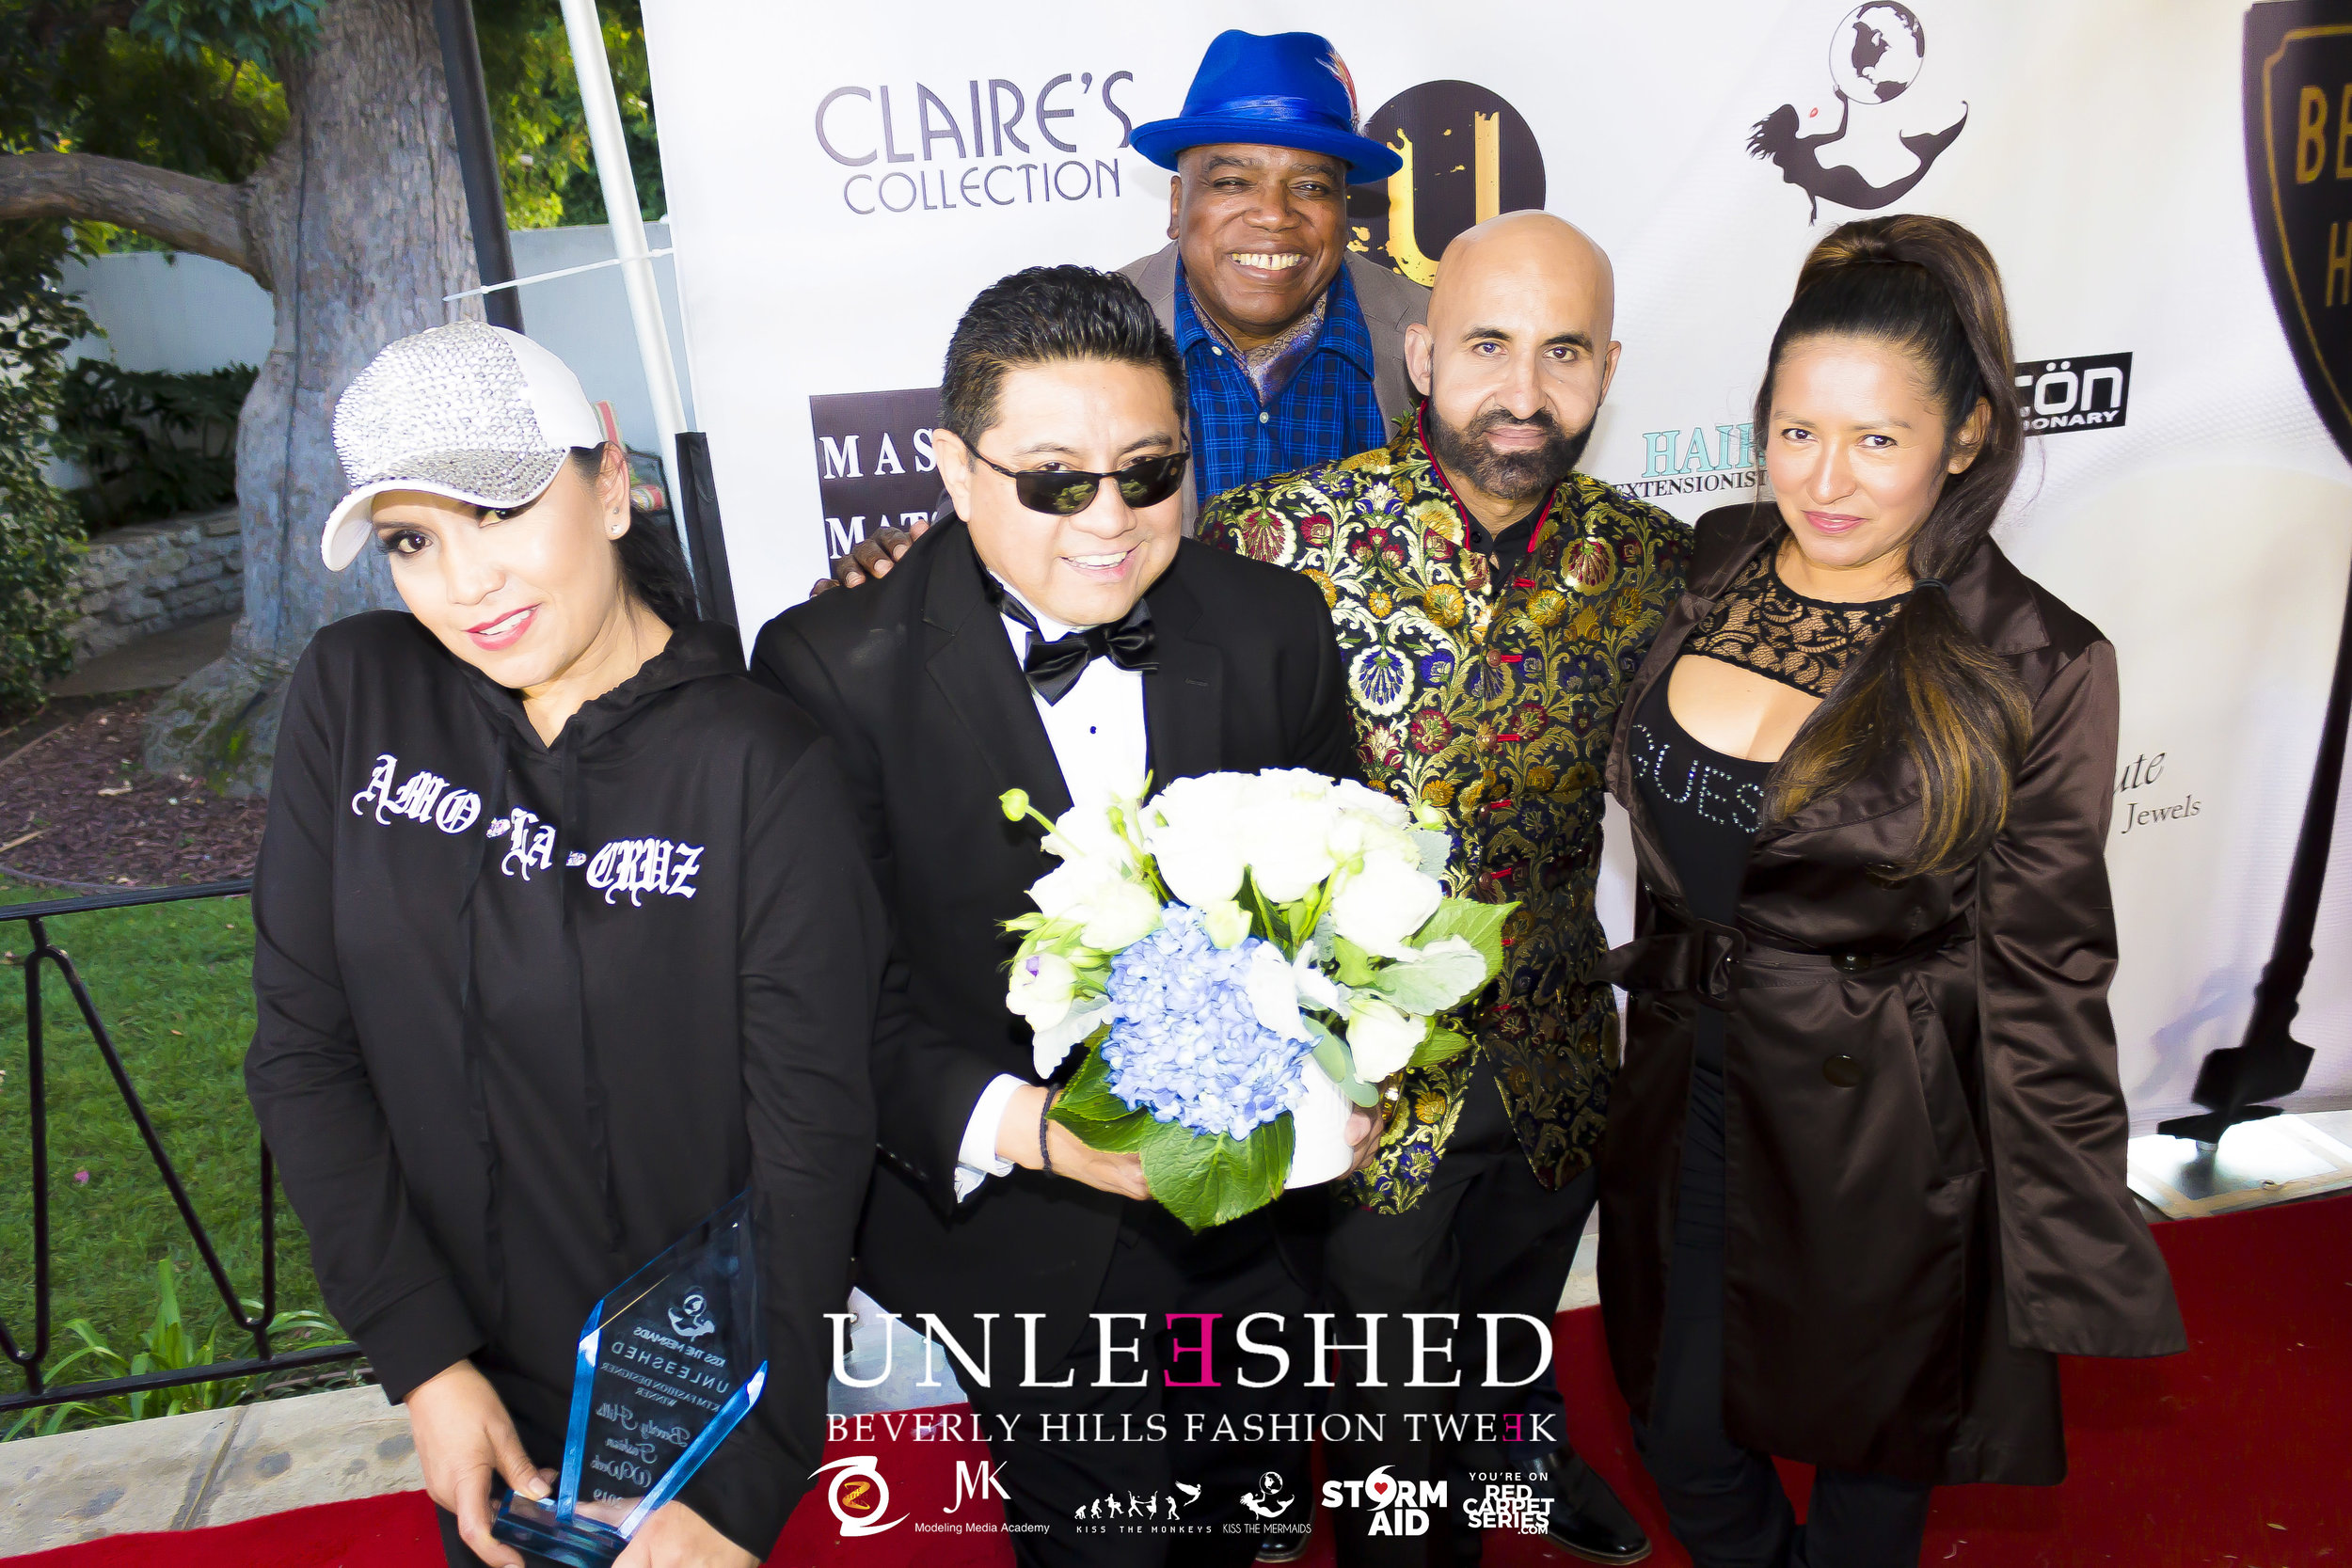 KTM - BH Fashion Tweek + Al's Bday_44 (3).jpg